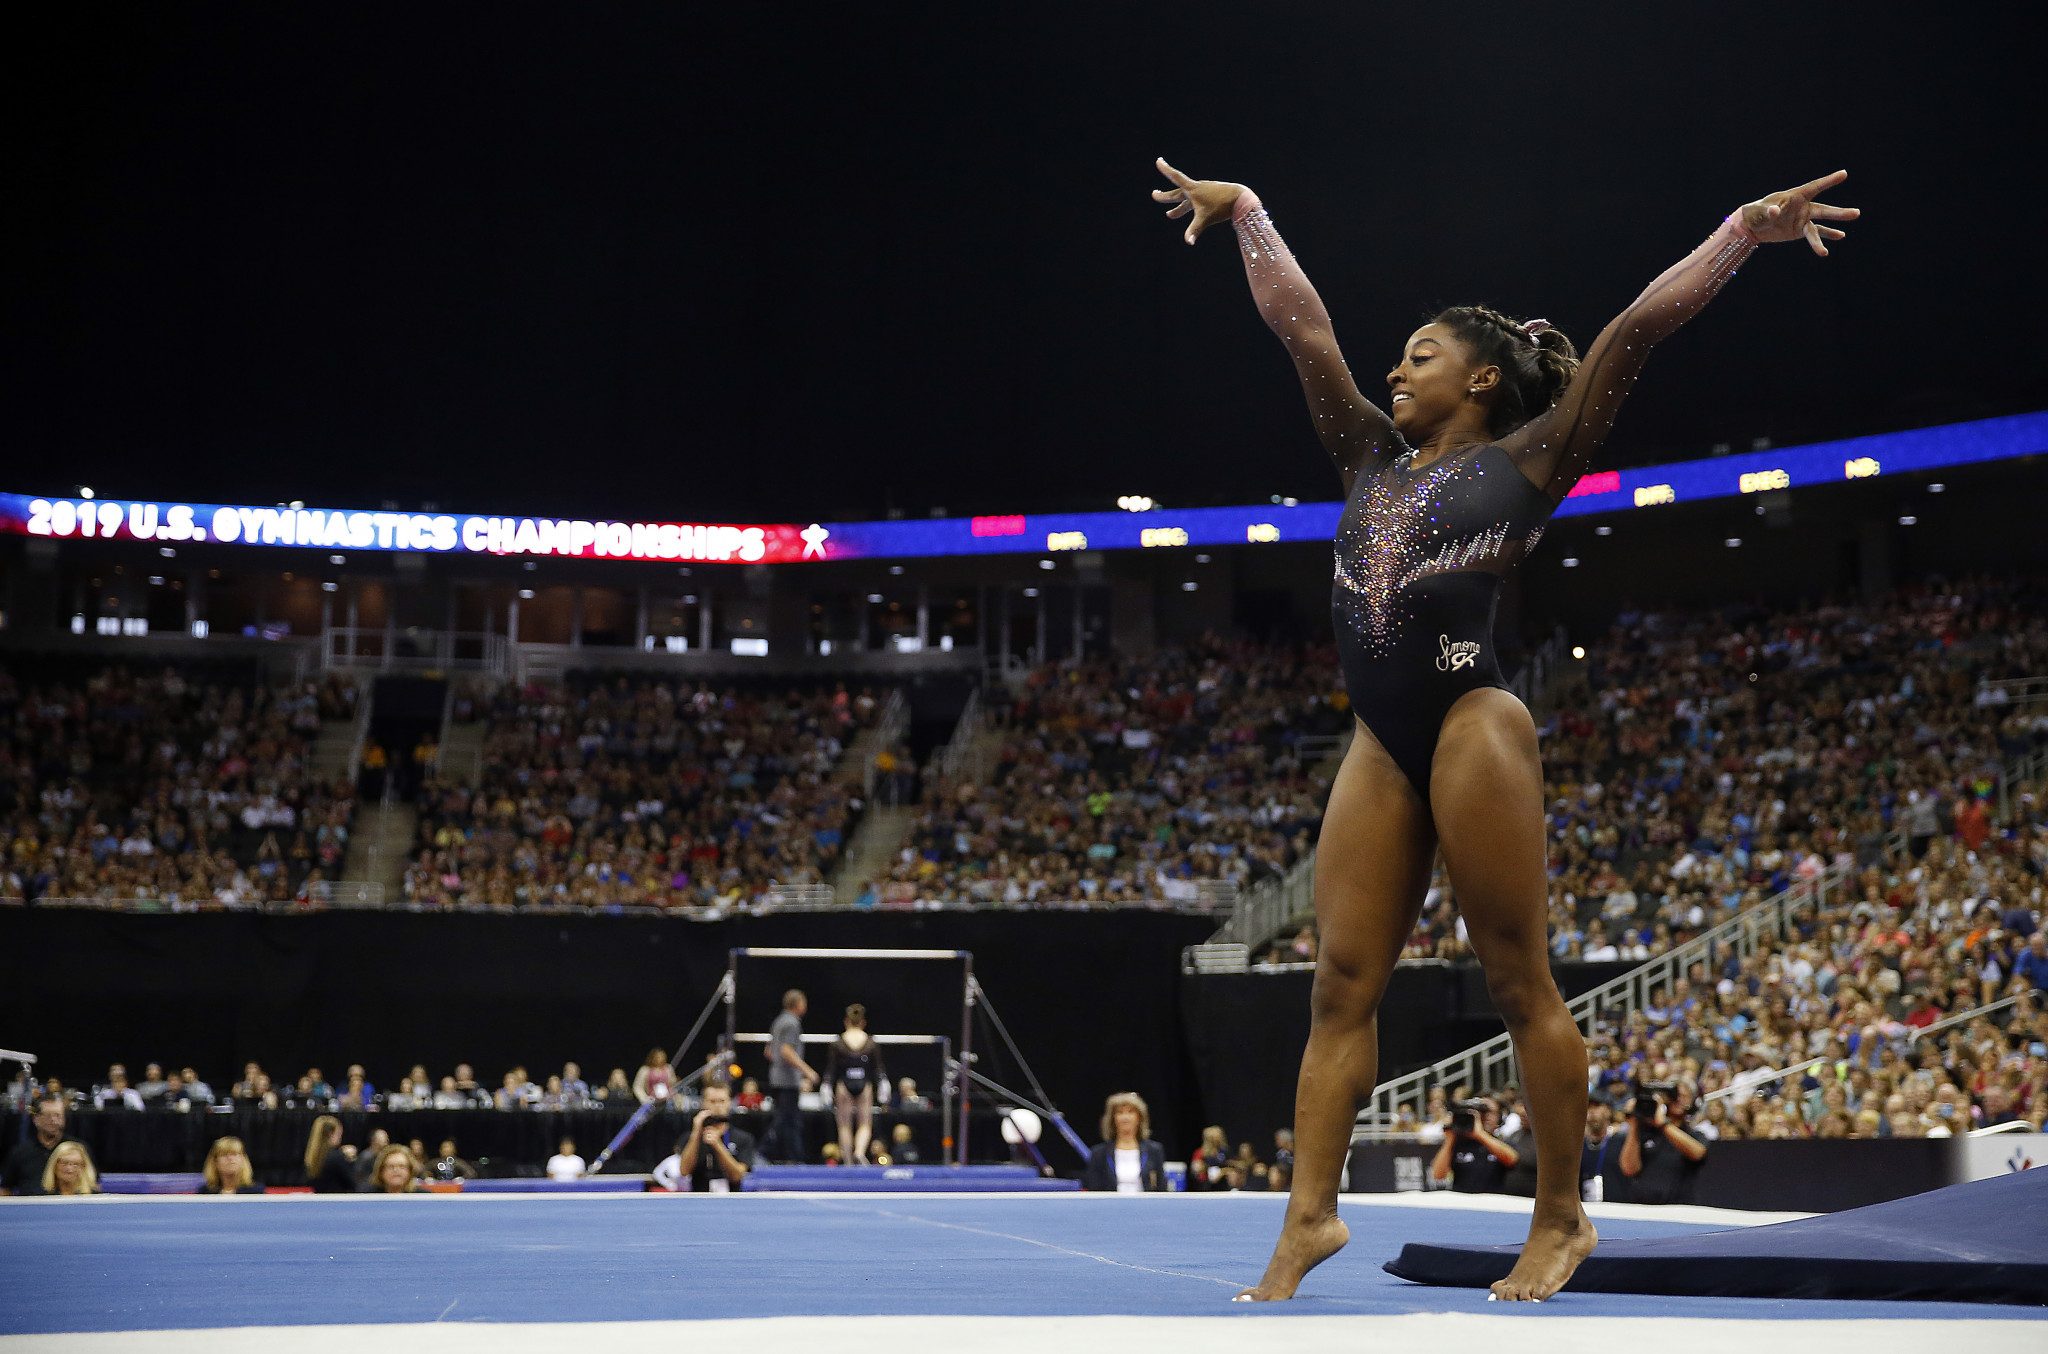 Biles and Burroughs among nominees for USOPC Best of August awards